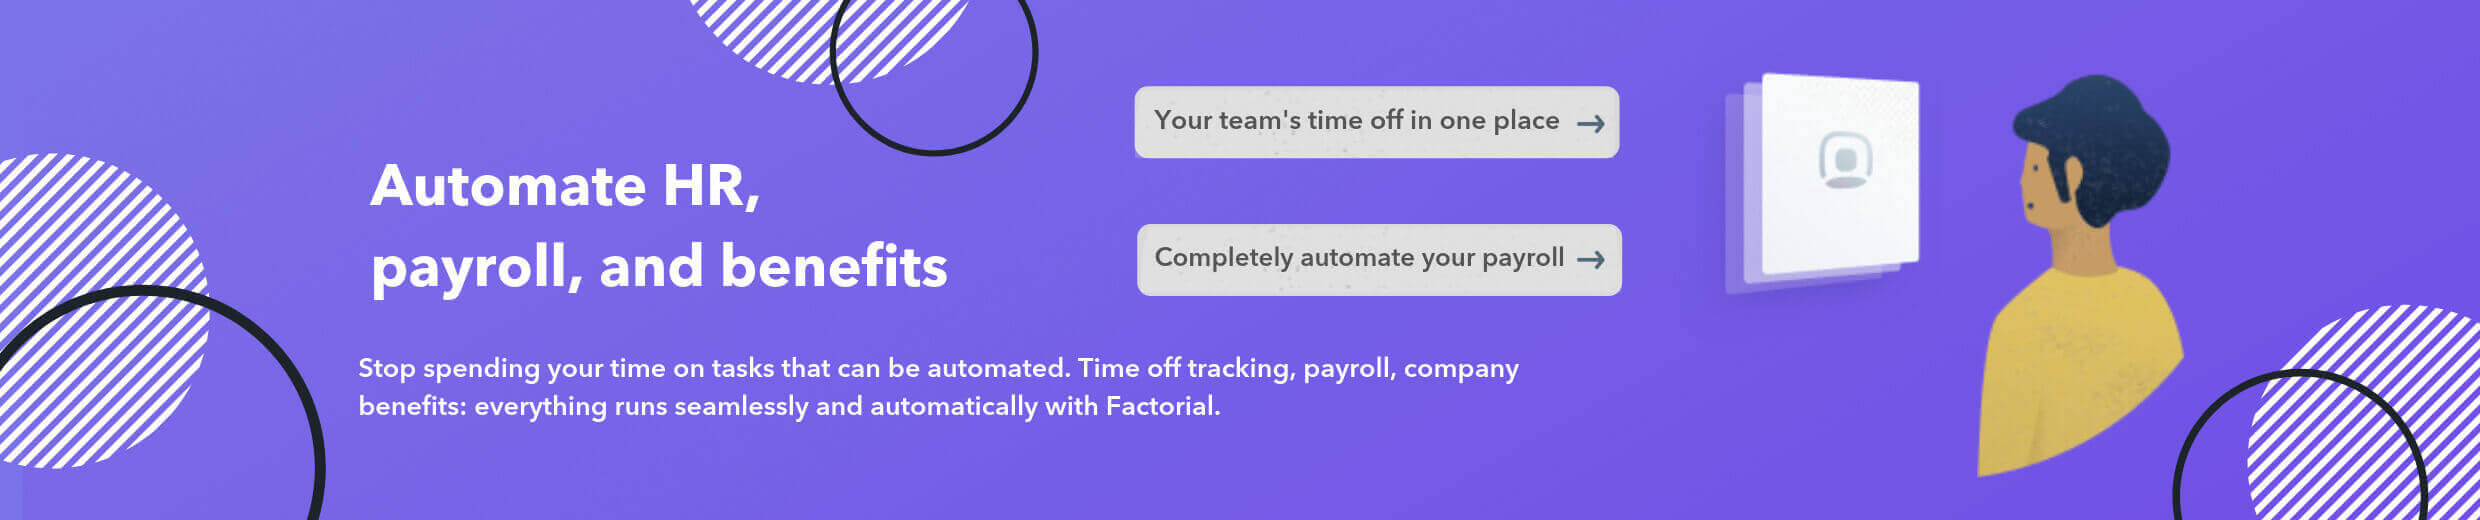 automate HR, payroll, benefits, solutions